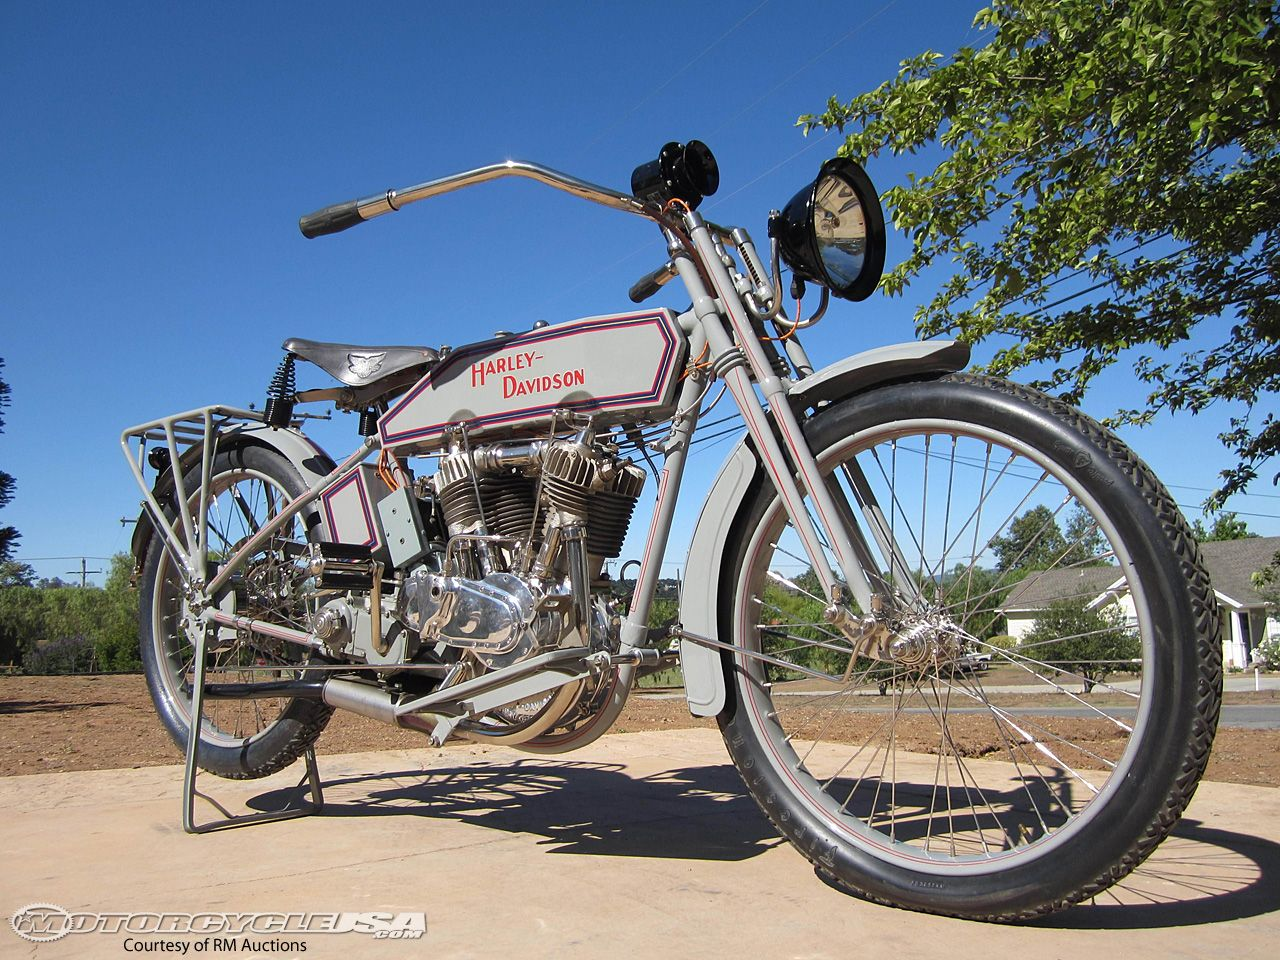 Antique Motorcycles For Sale Motorcycle Will Be At The